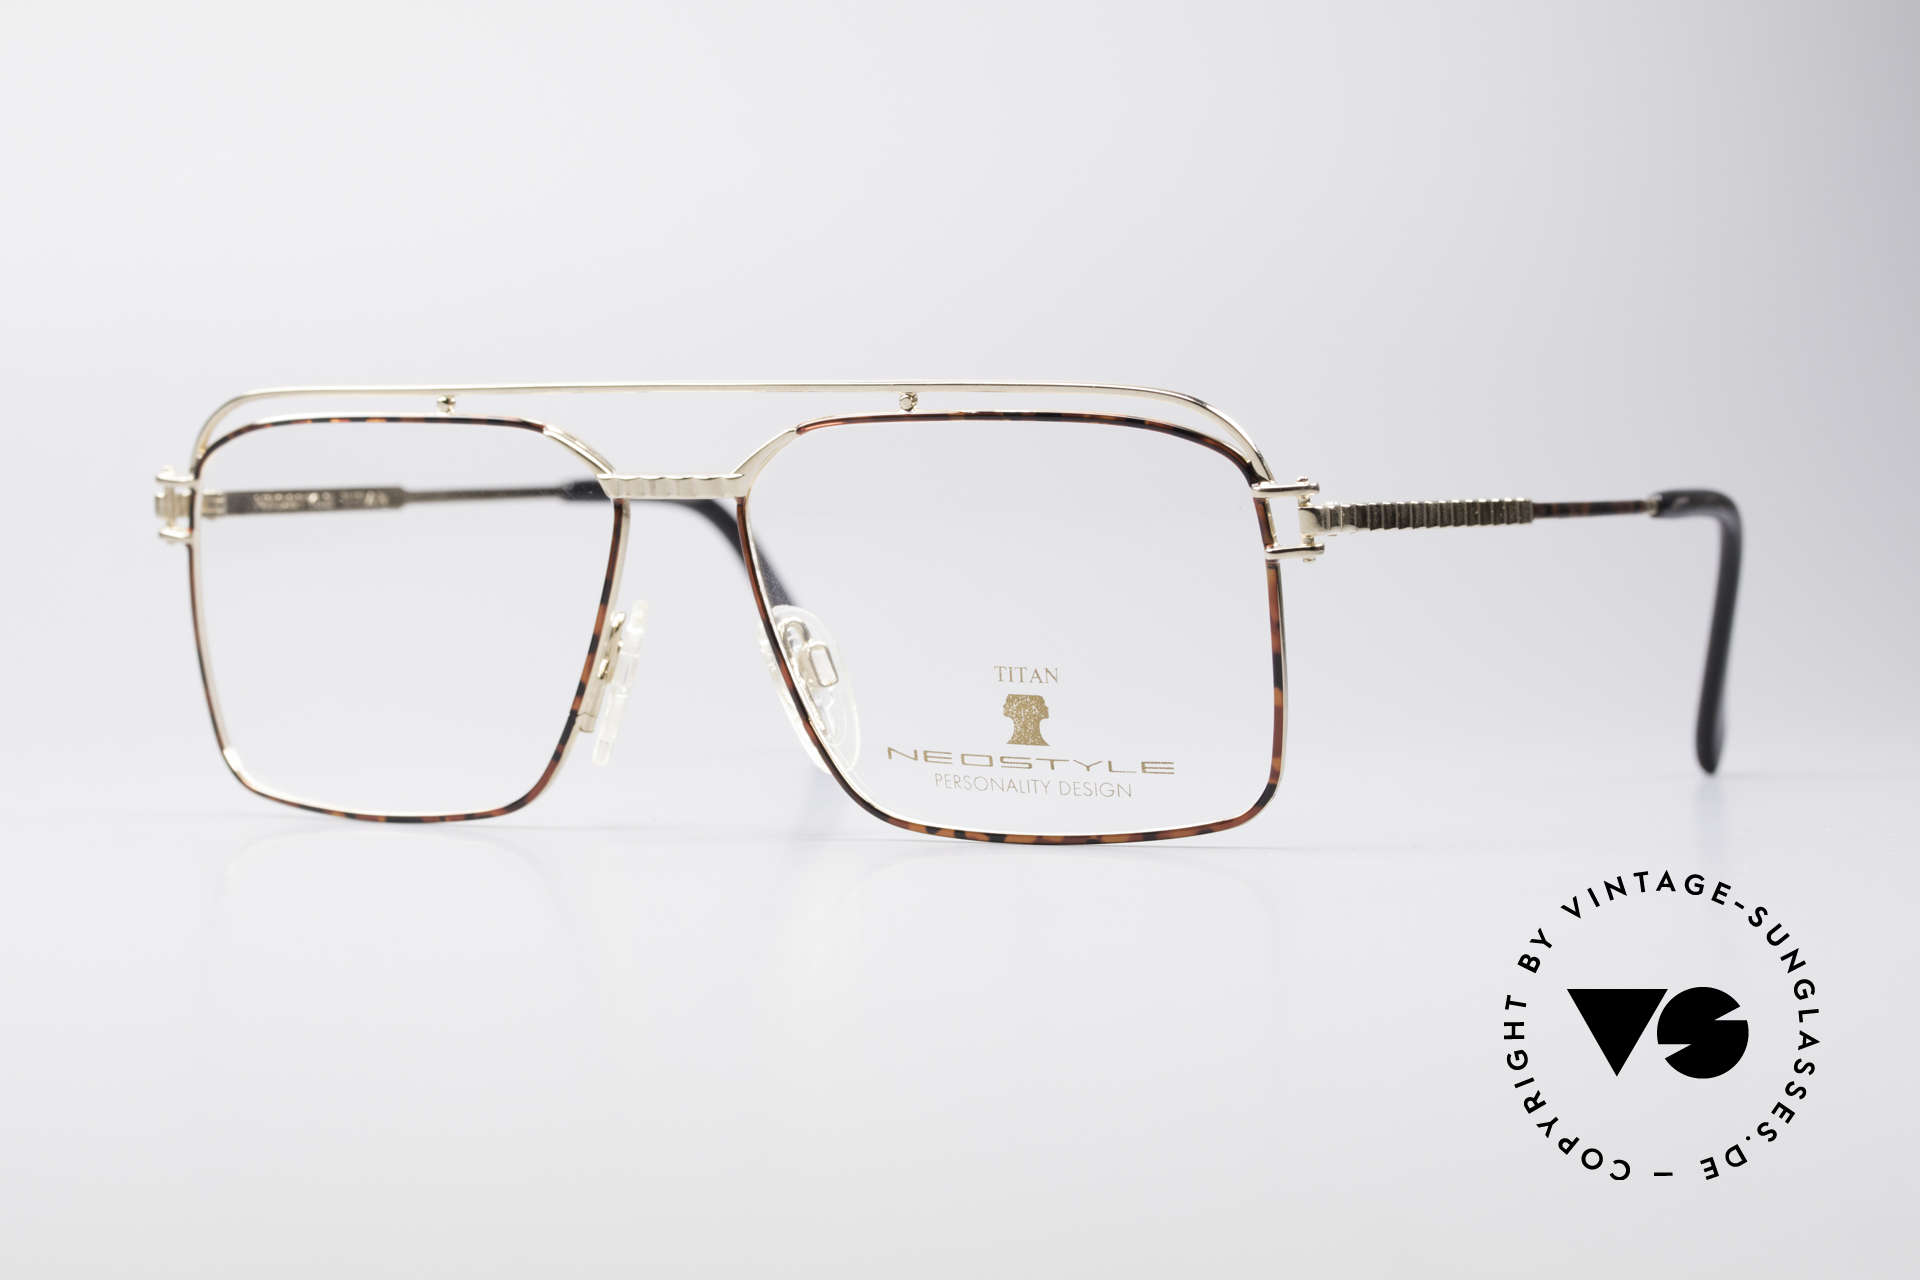 Neostyle Dynasty 424 - L 80's Titanium Men's Frame, striking men's glasses by Neostyle; LARGE size, Made for Men